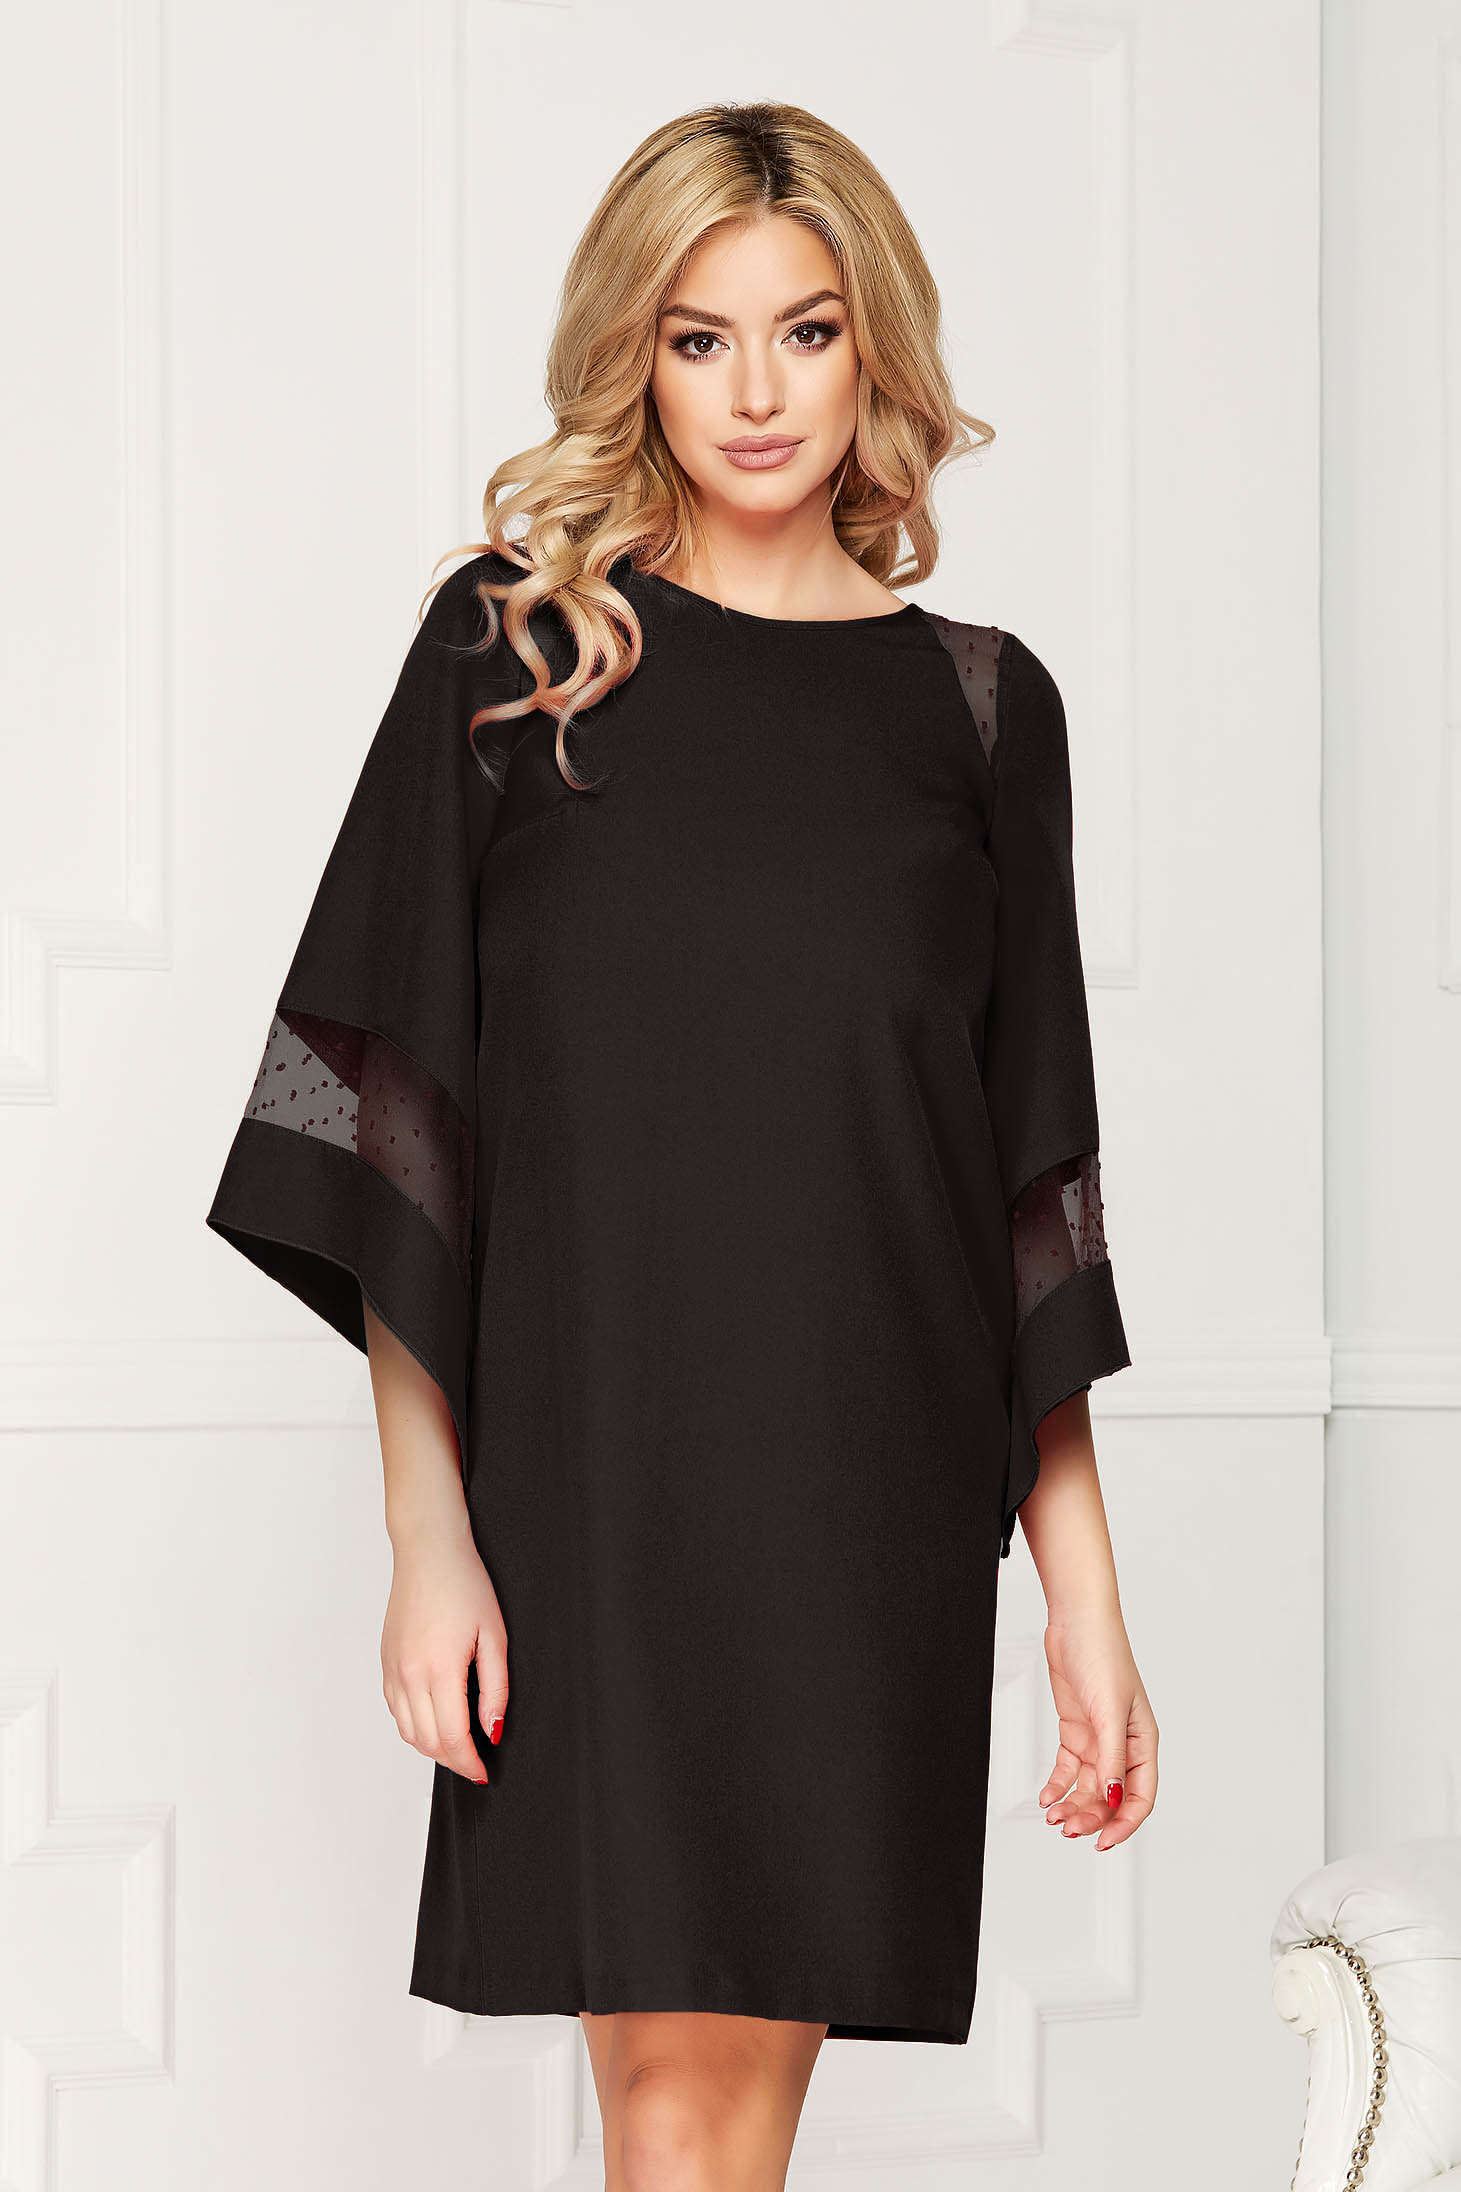 Dress StarShinerS black occasional cloth midi flared cut with inside lining bell sleeves